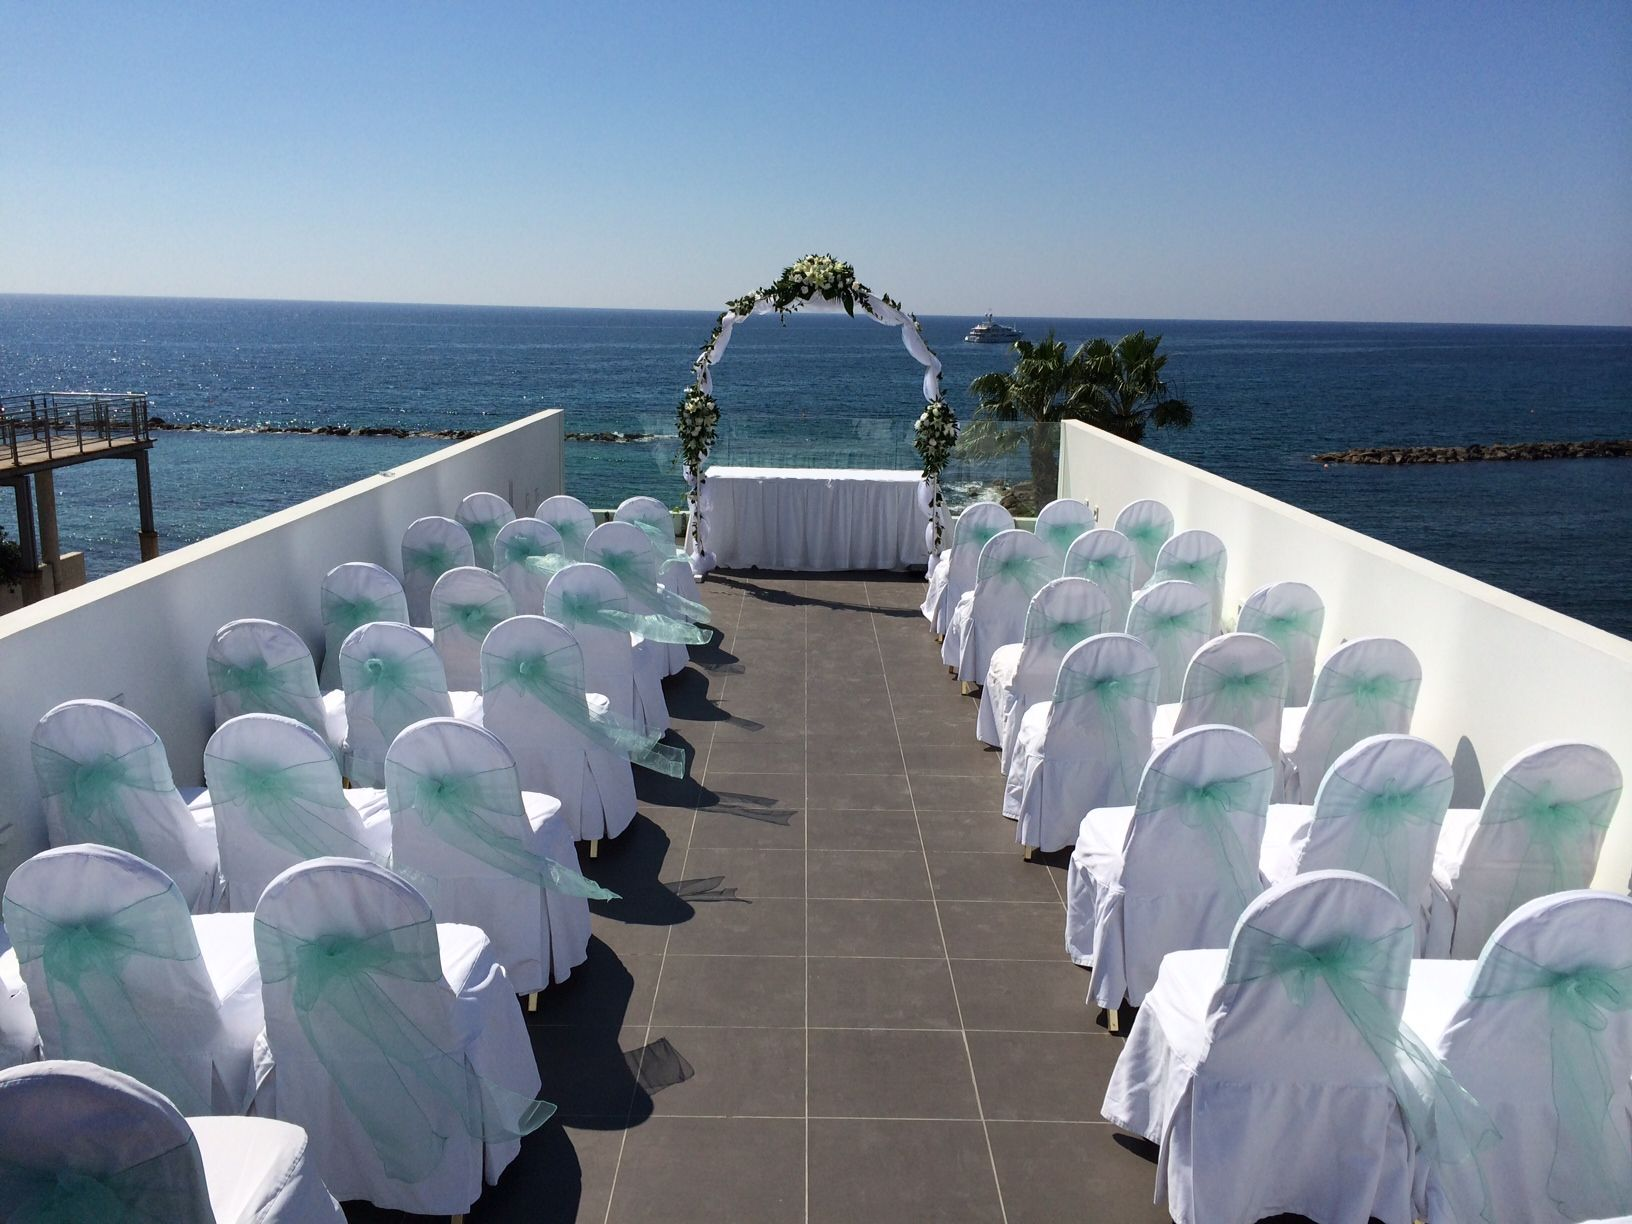 Beautiful View From The Spa Roof Terrace At The Almyra Hotel Paphos Hotel Wedding Venues Cyprus Wedding Hotel Wedding